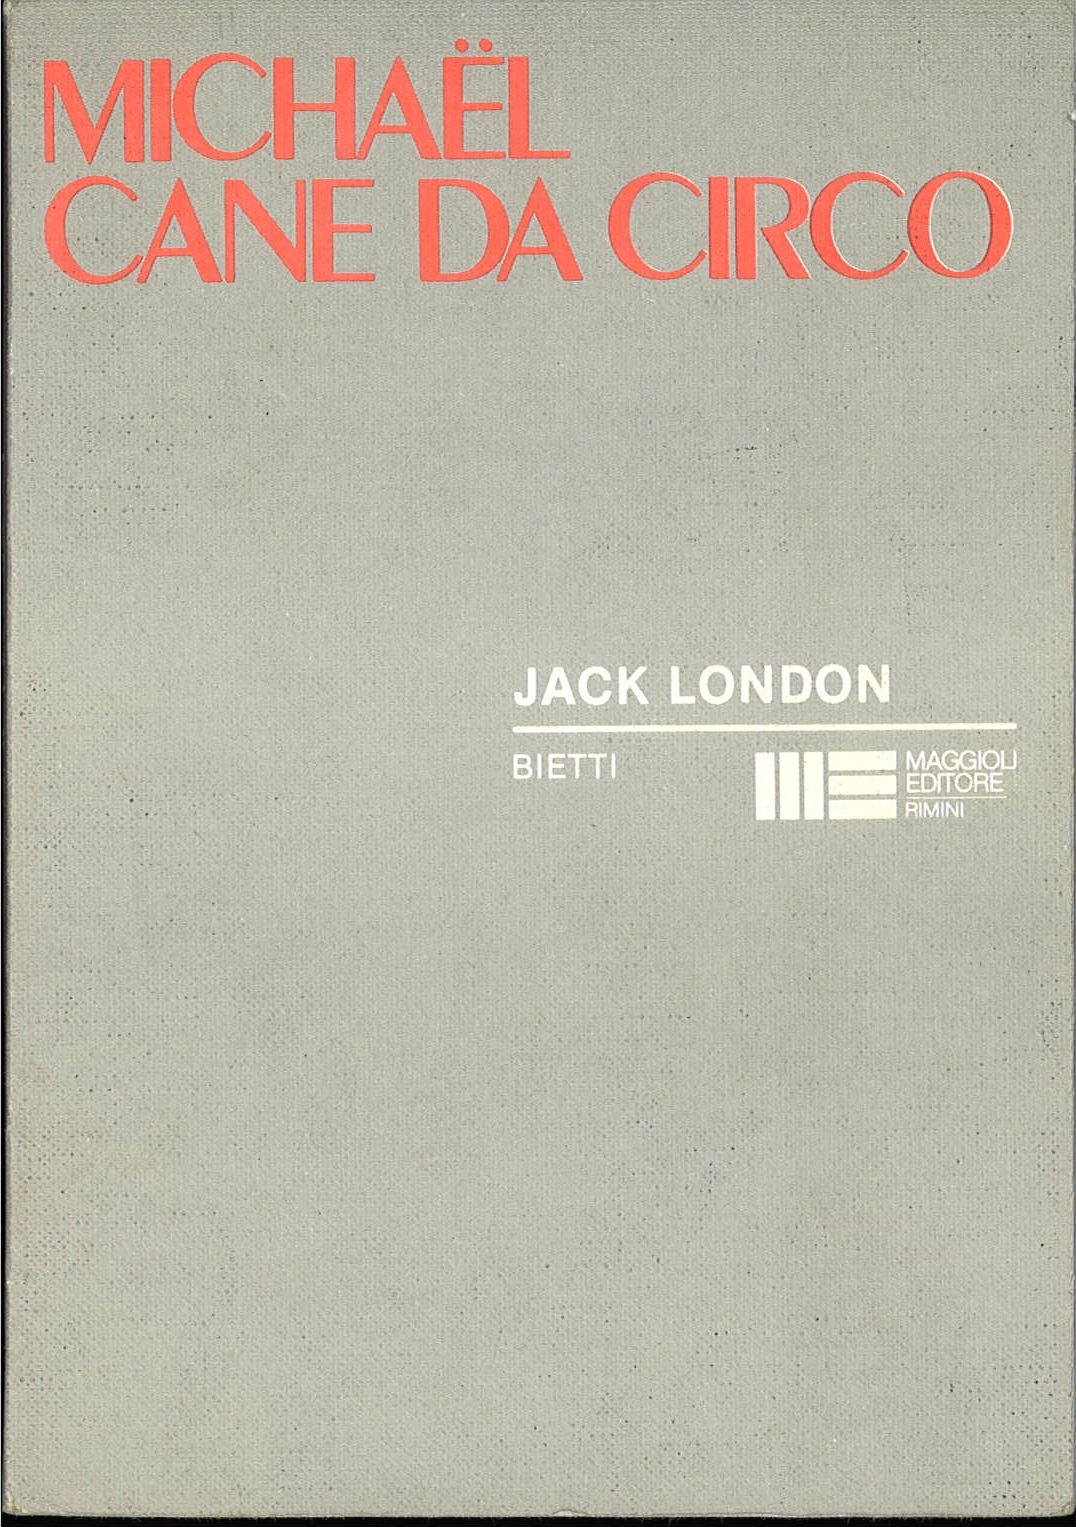 MICHAEL CANE DA CIRCO - JACK LONDON